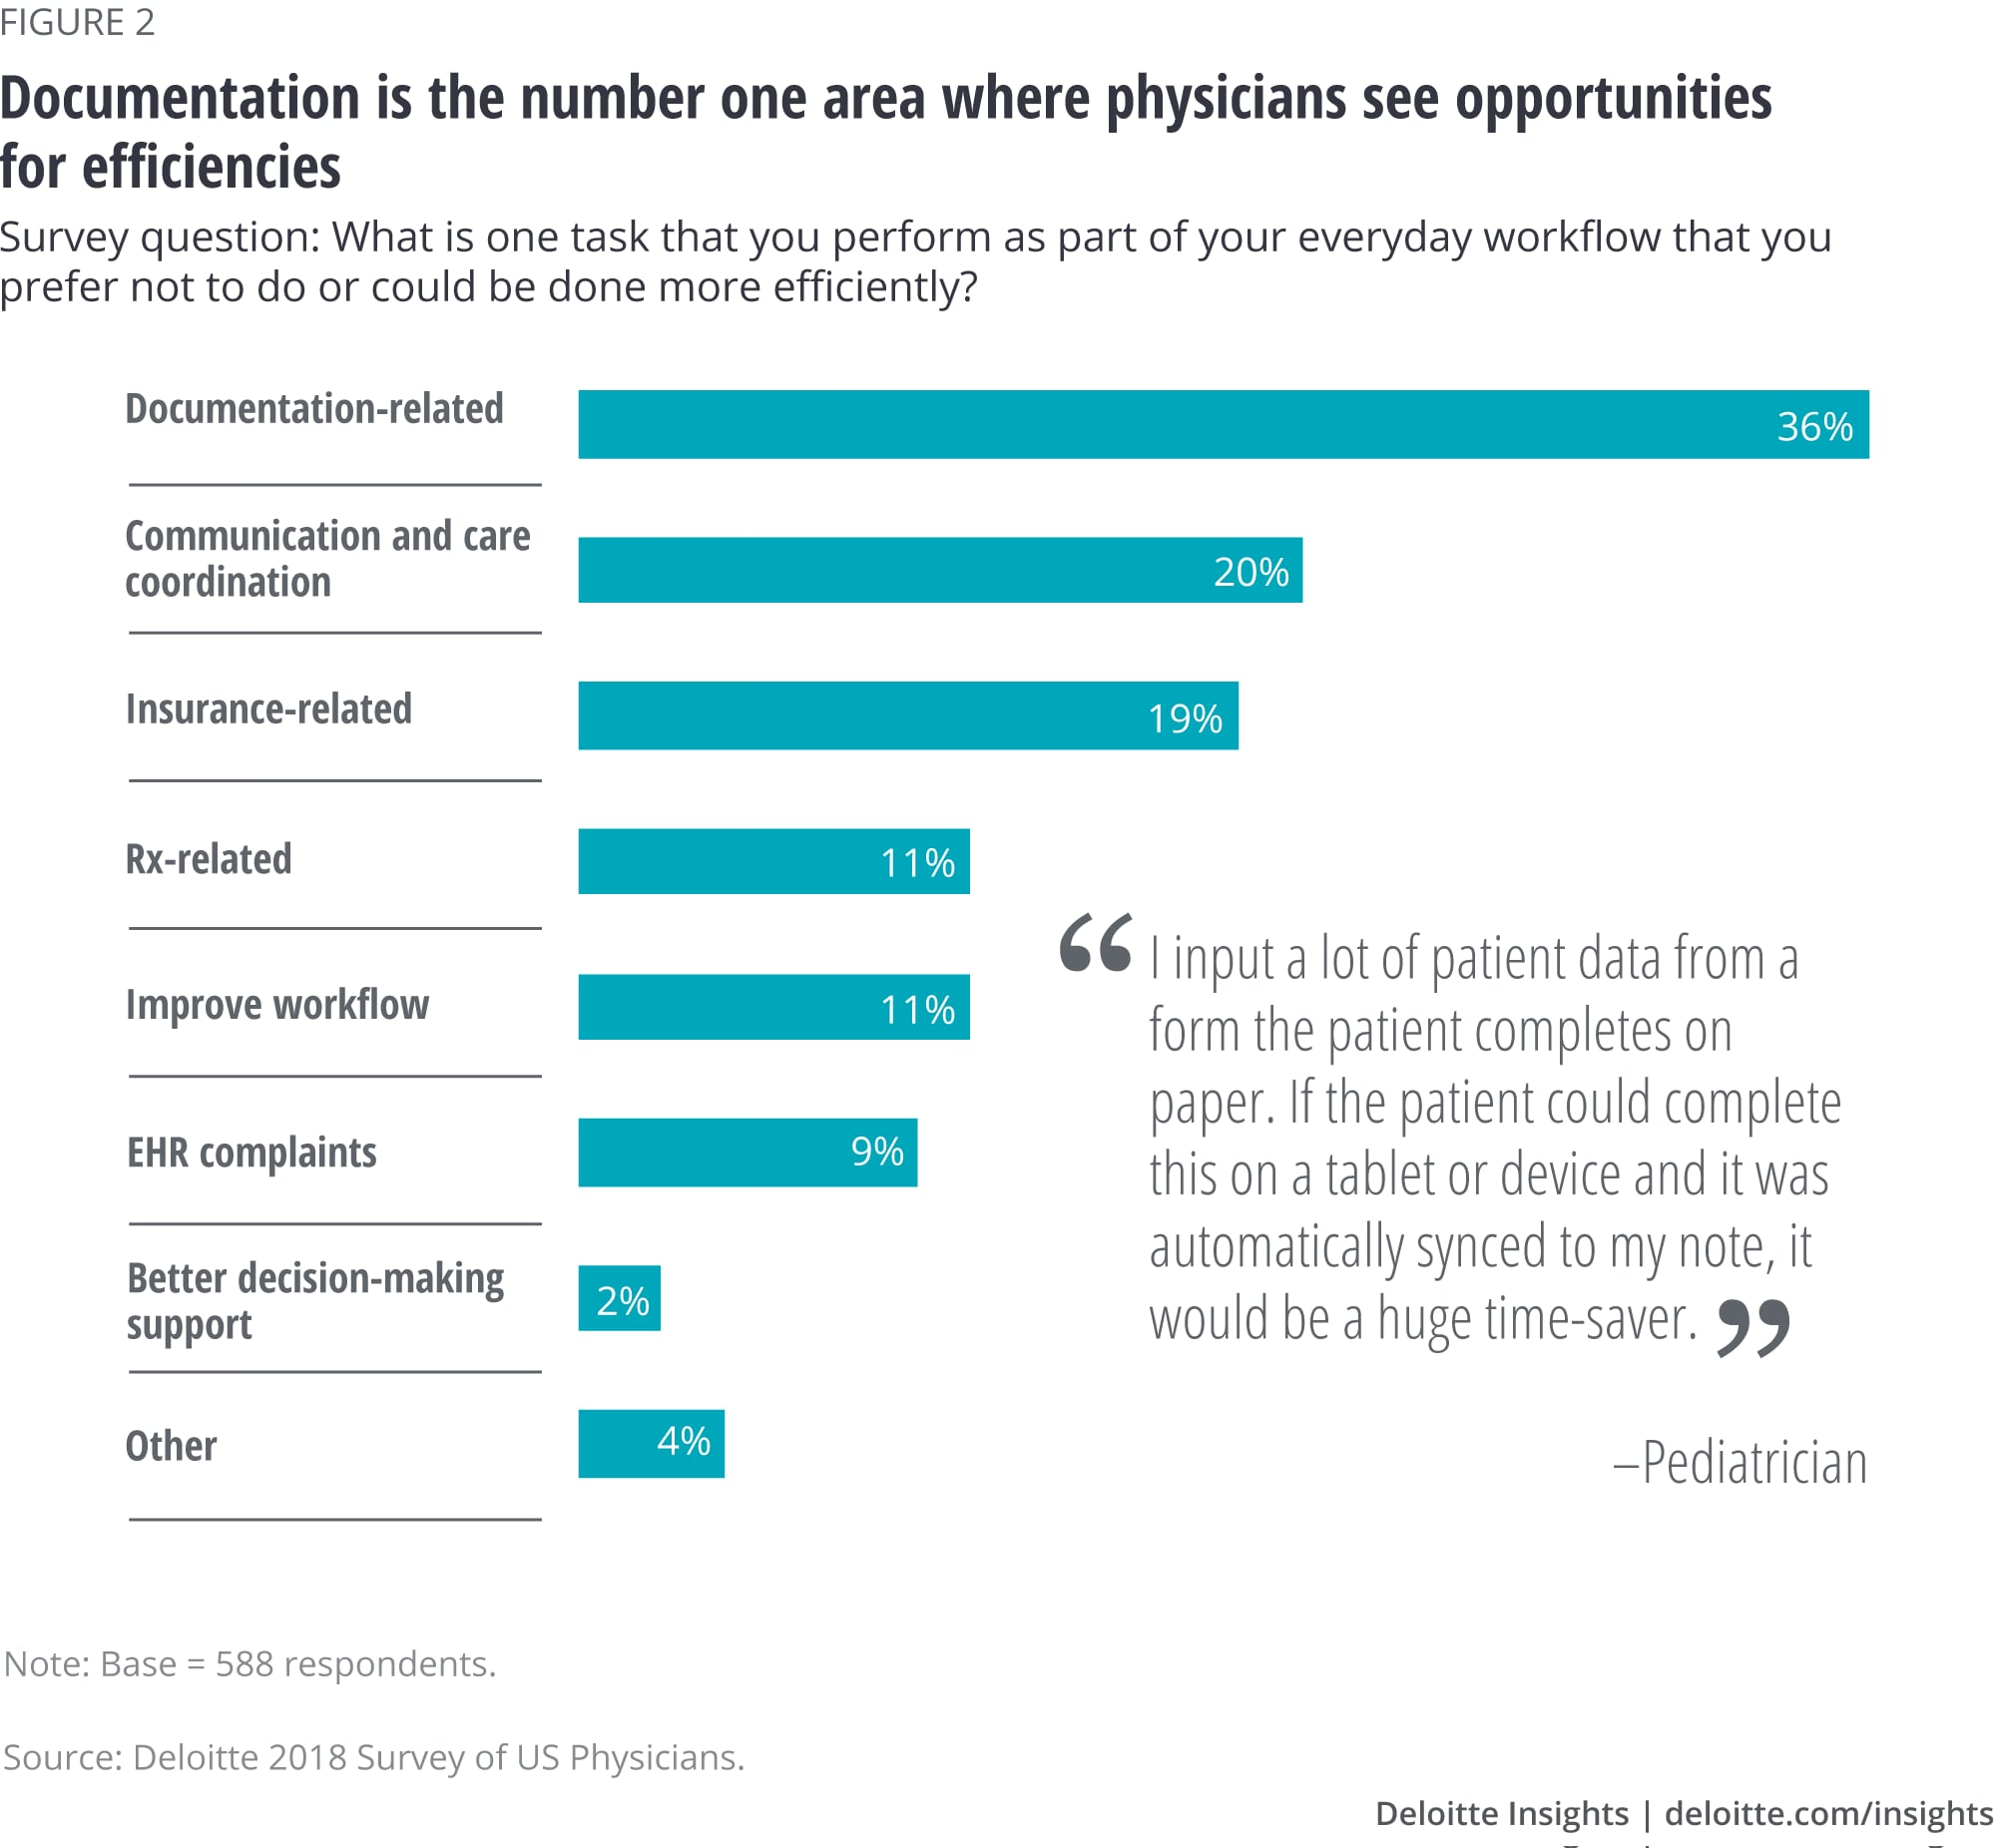 Documentation is the number one area where physicians see opportunities for efficiencies